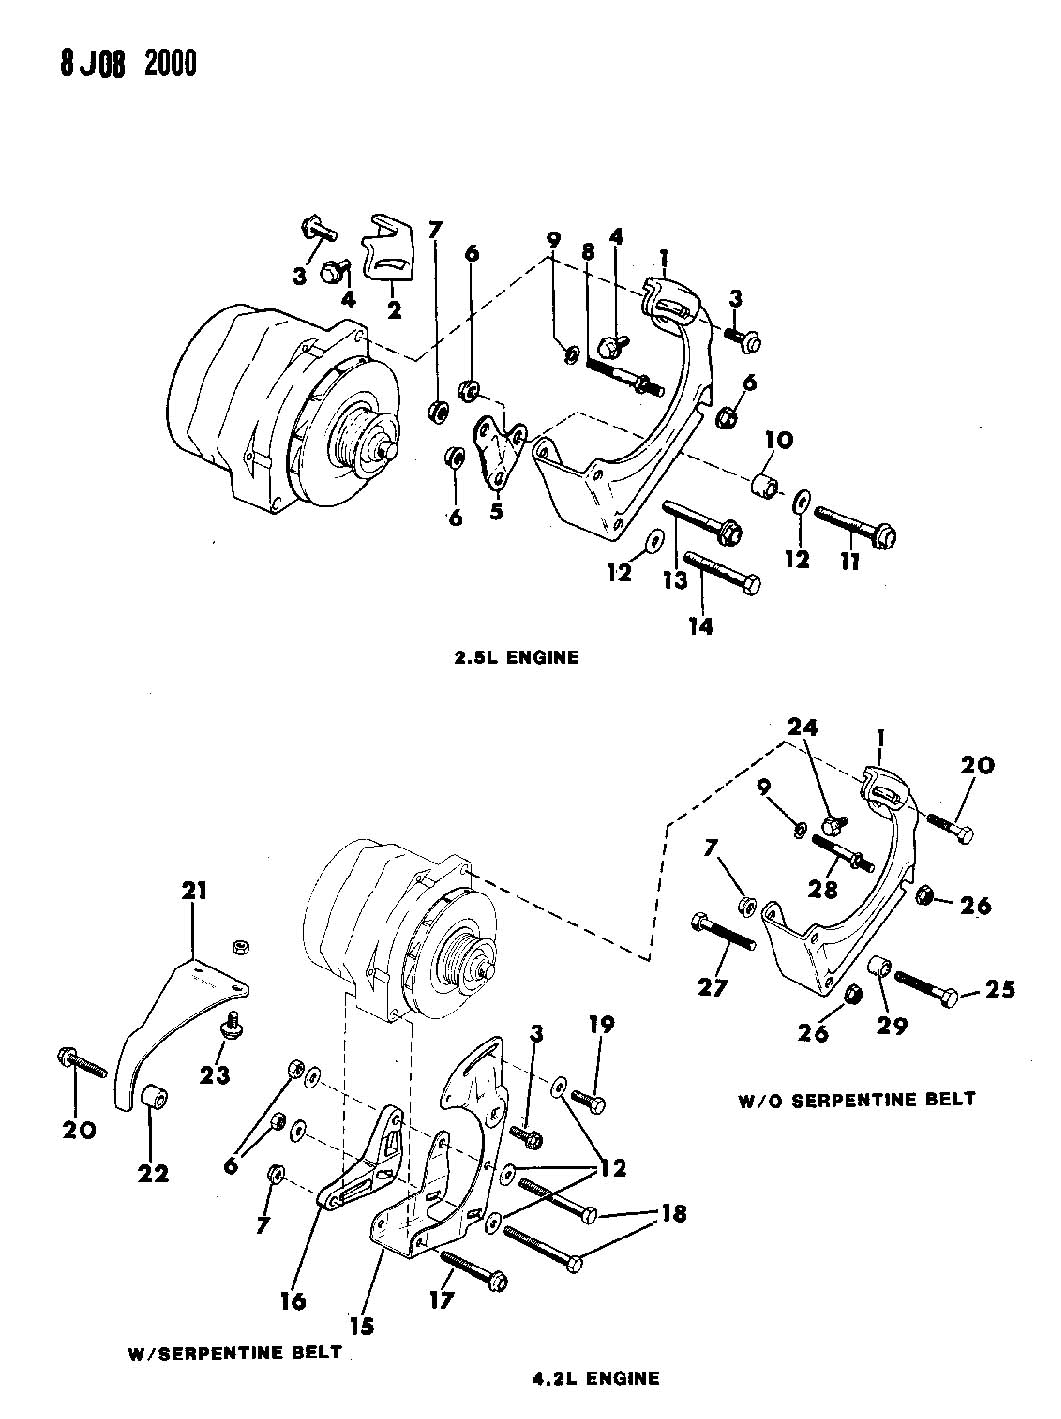 1987 jeep wrangler 4 2l engine diagram  1987  free engine image for user manual download